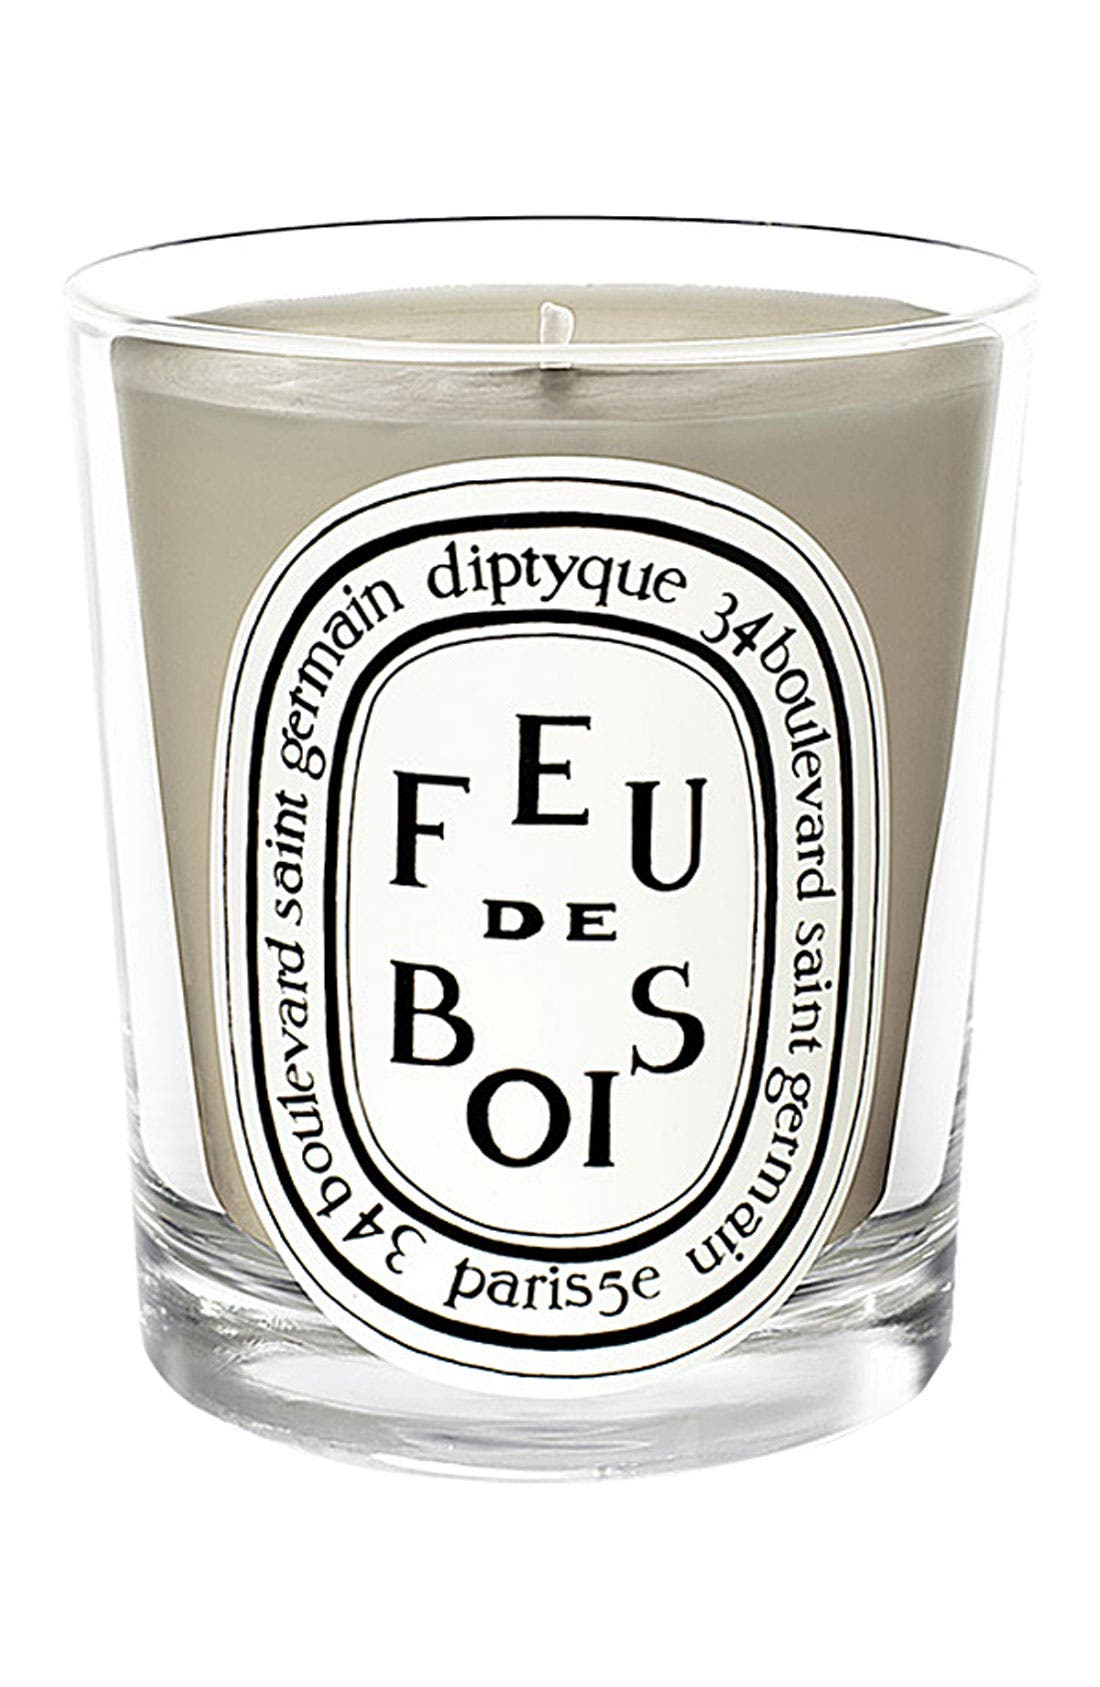 Alternate Image 1 Selected - diptyque Feu de Bois/Wood Fire Scented Candle